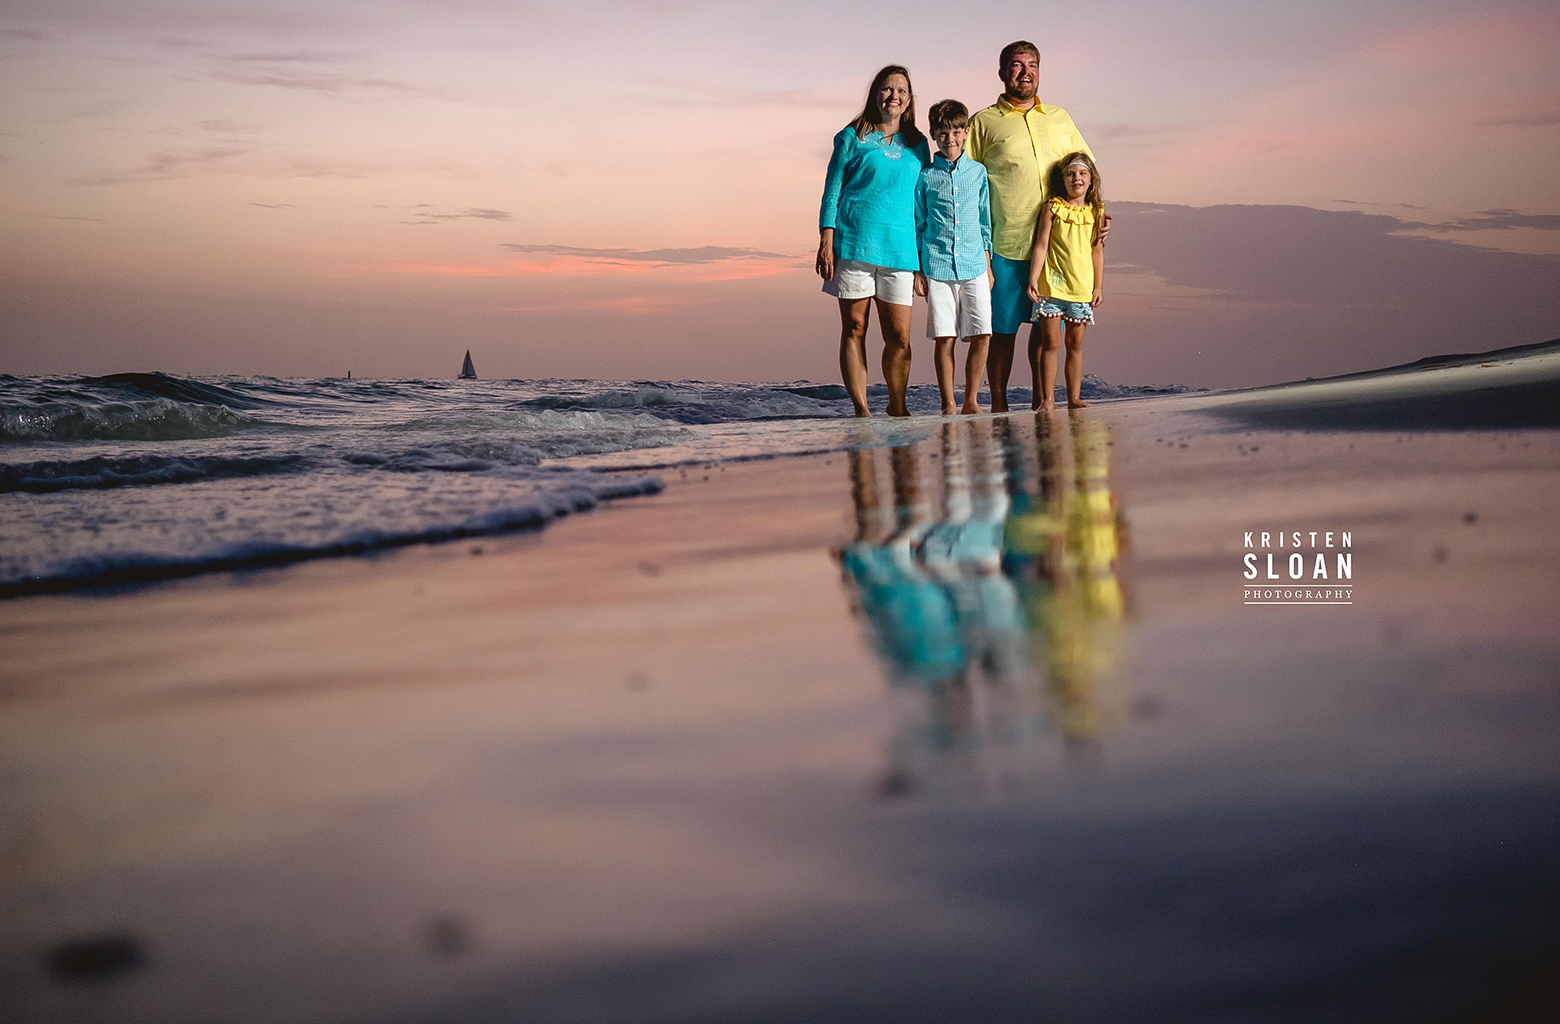 St Pete Beach Treasure Island Photographer Kristen Sloan